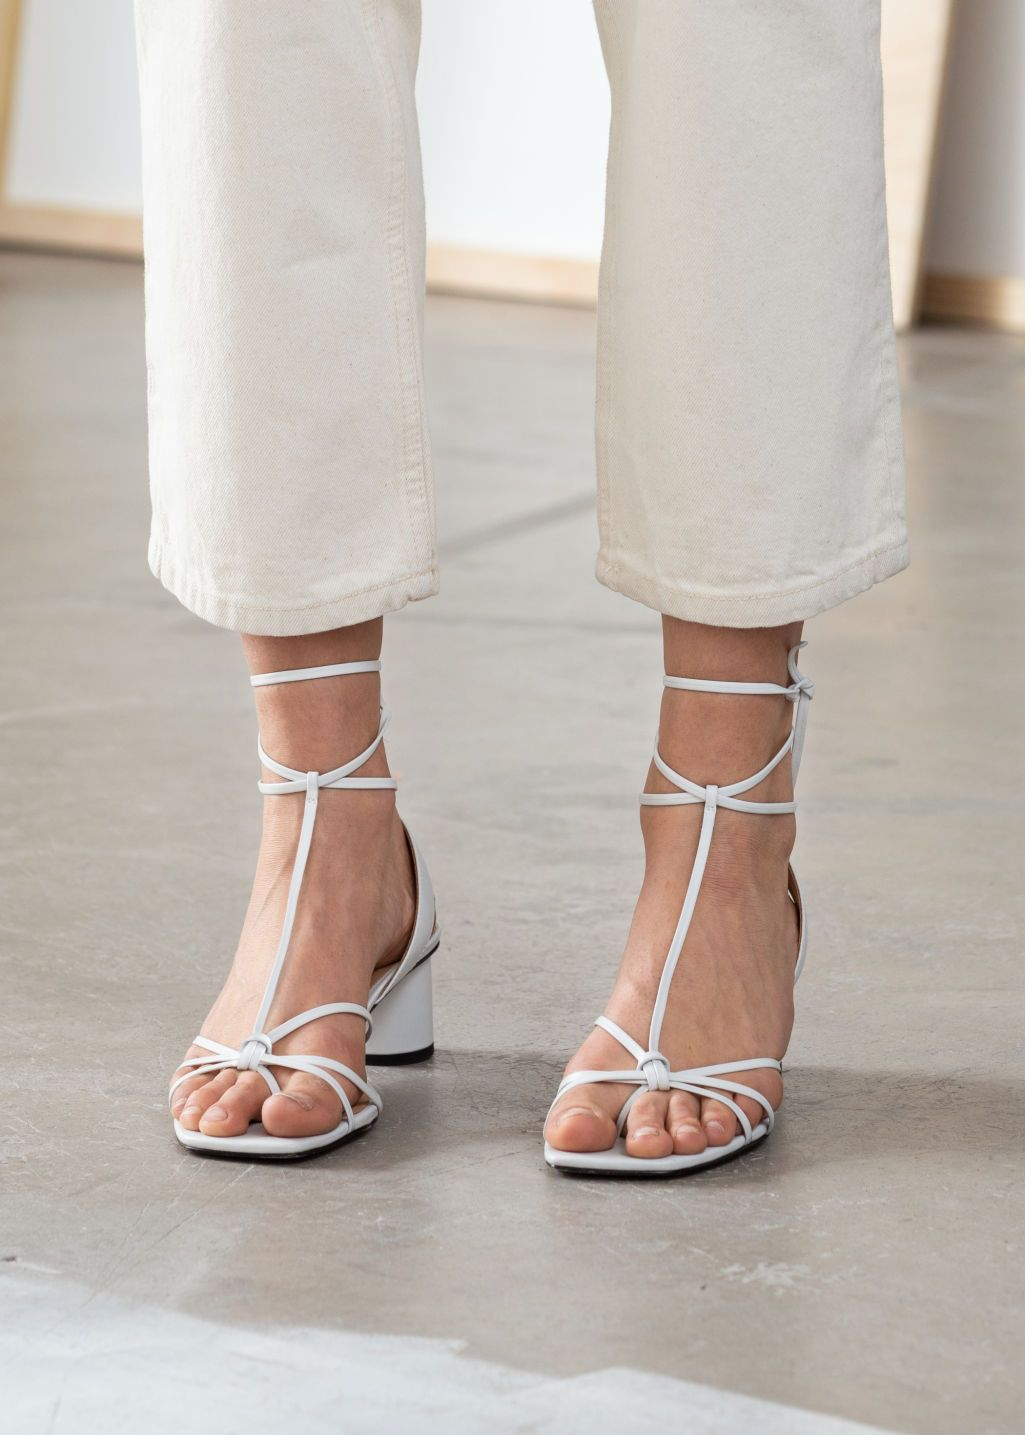 Square Toe Leather Strappy Heeled Sandals | Square toe heels